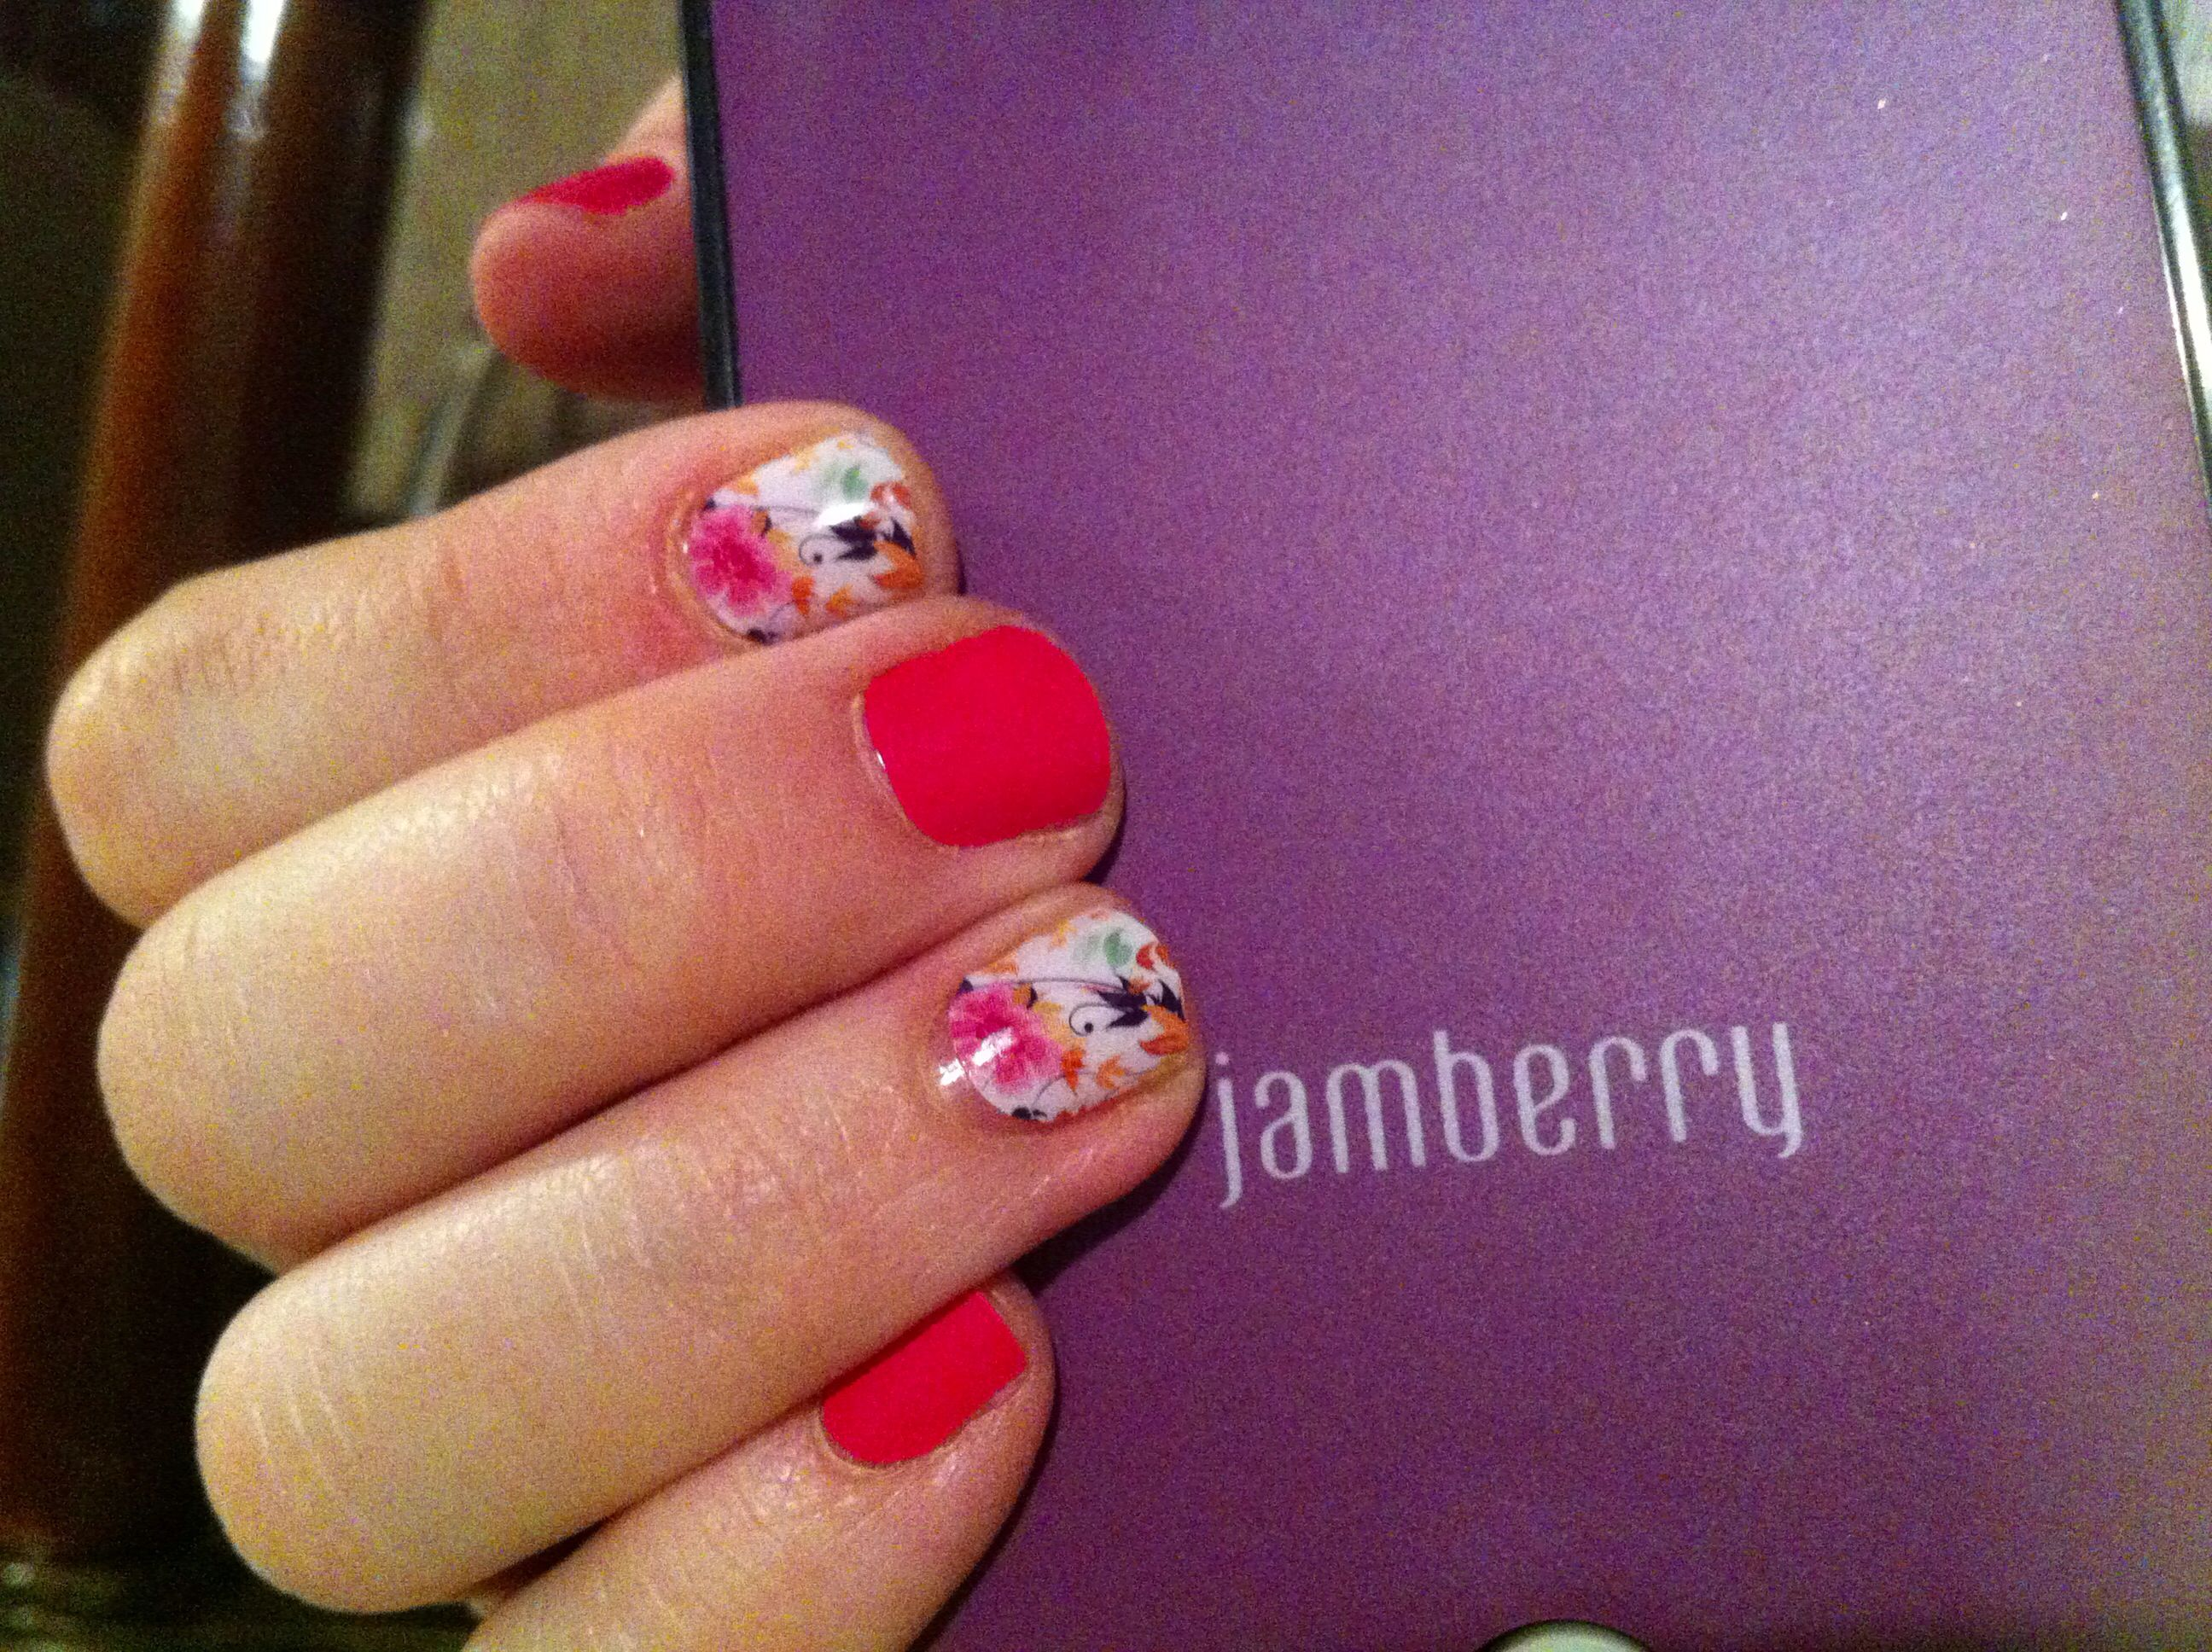 Short nails can be cute with nail art too! Jamberry on short nails ...